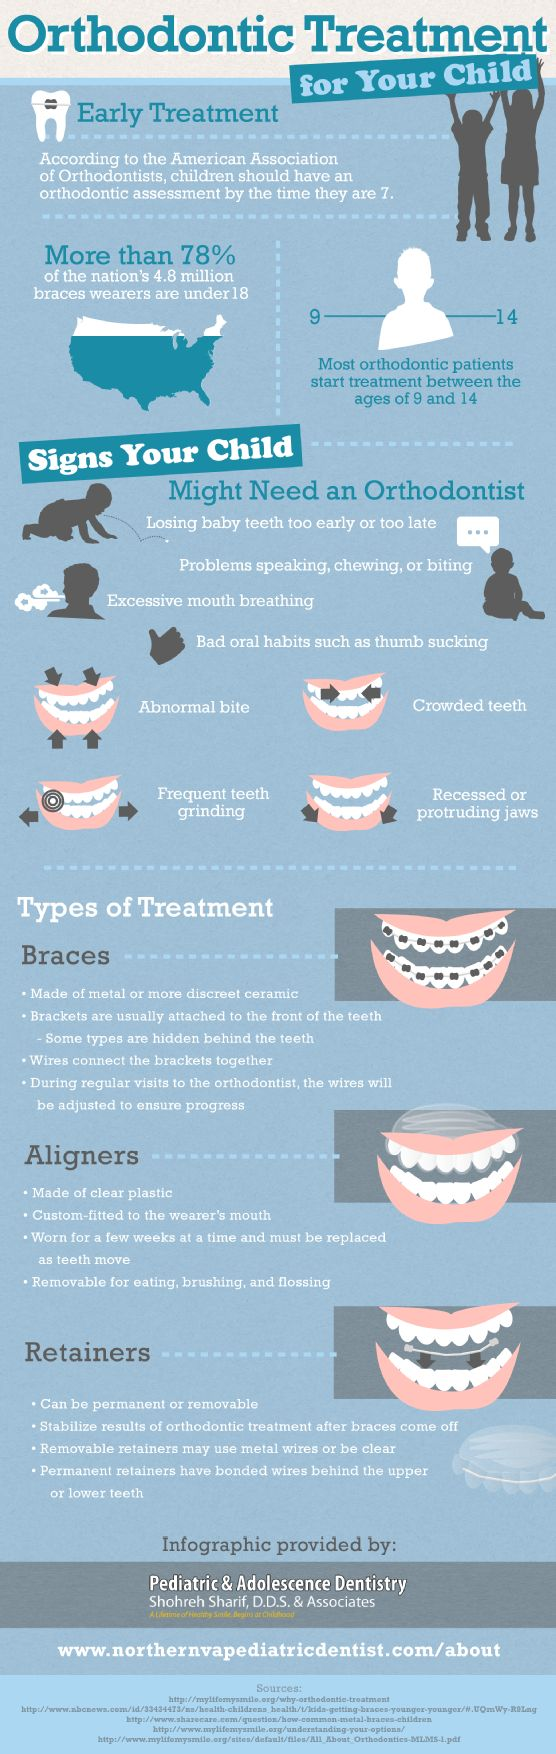 Do you know the differences between braces, aligners, and retainers? Even though they all correct orthodontic issues, they serve very different purpose.